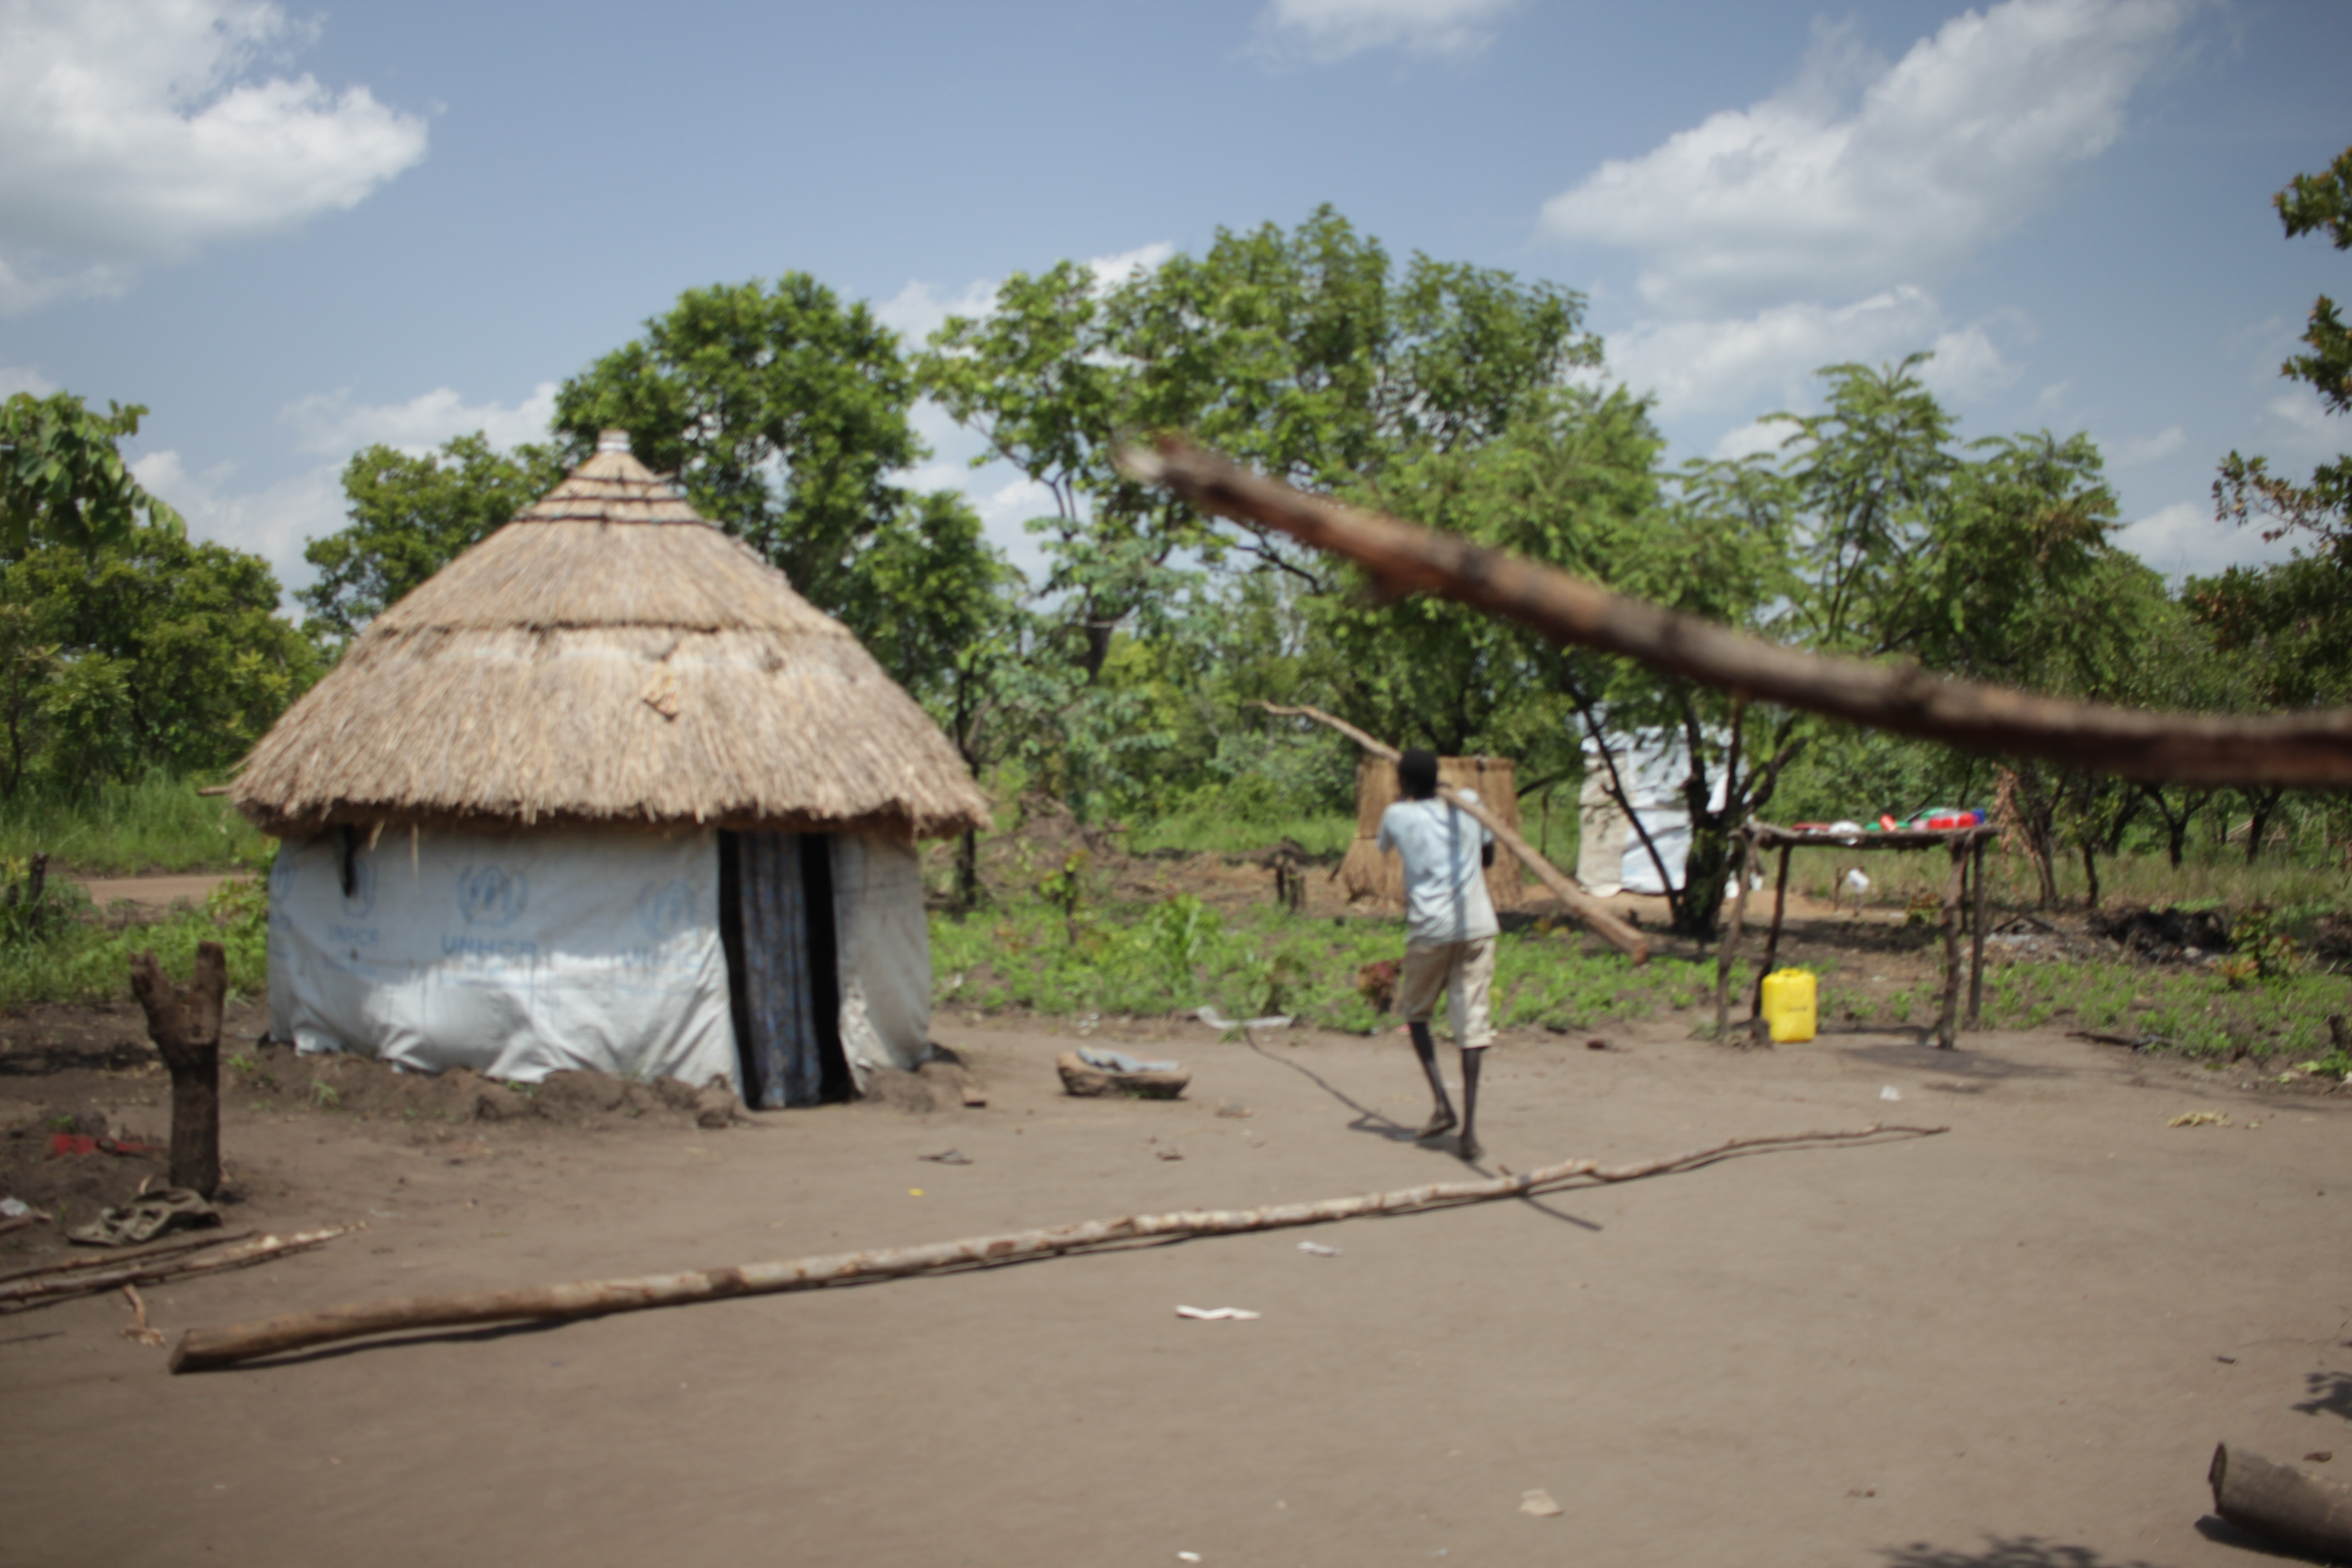 South Sudan refugees build new homes in Uganda